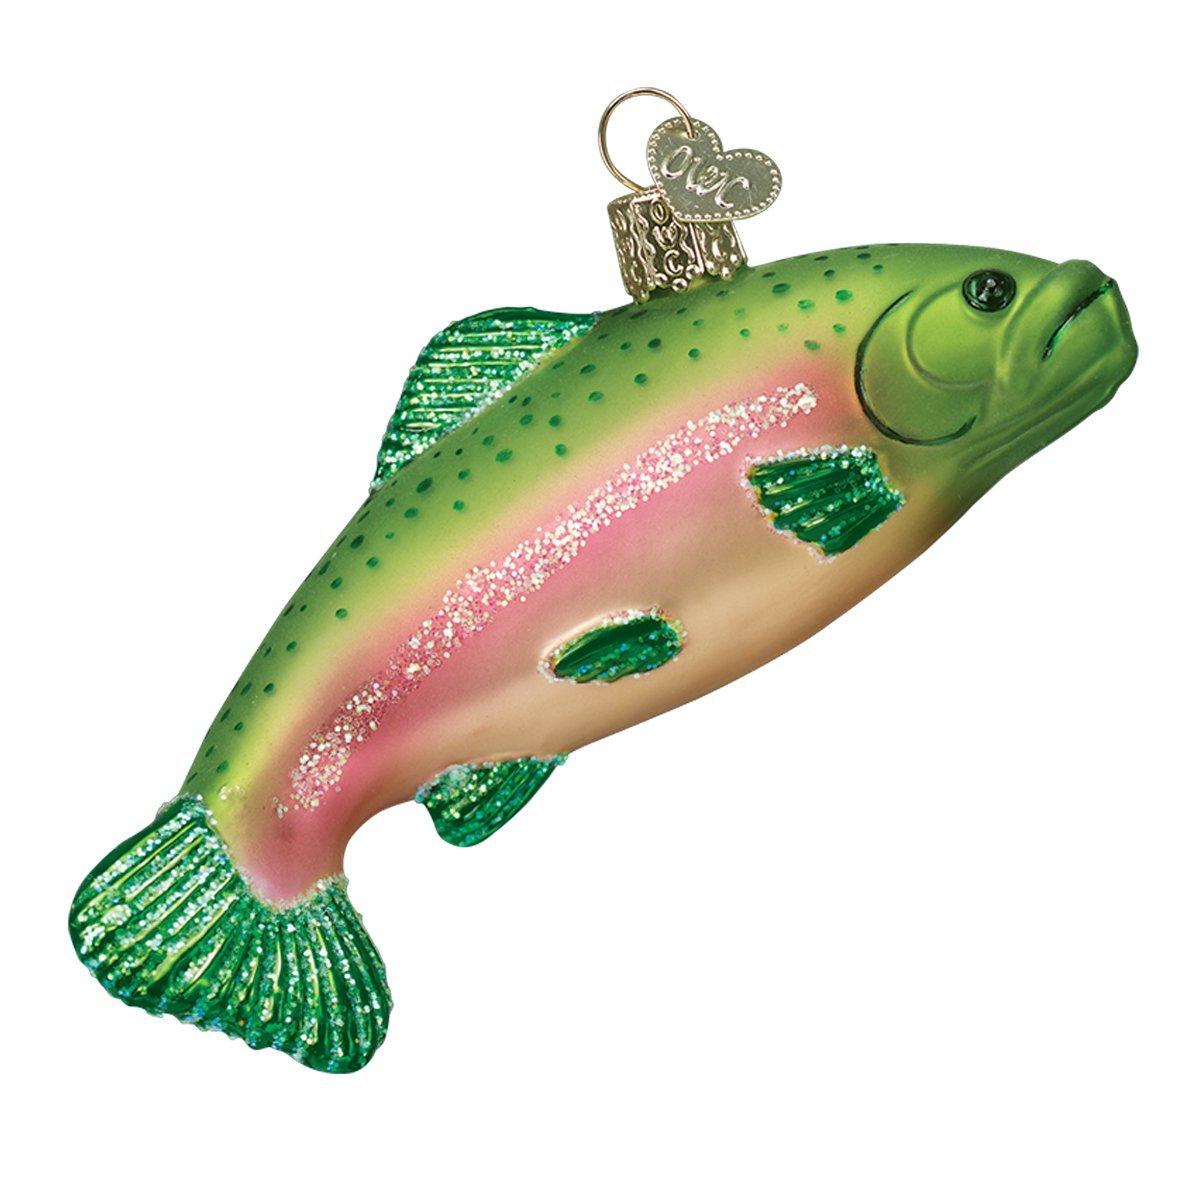 Old World Christmas Ornaments: Rainbow Trout Glass Blown Ornaments for Christmas Tree